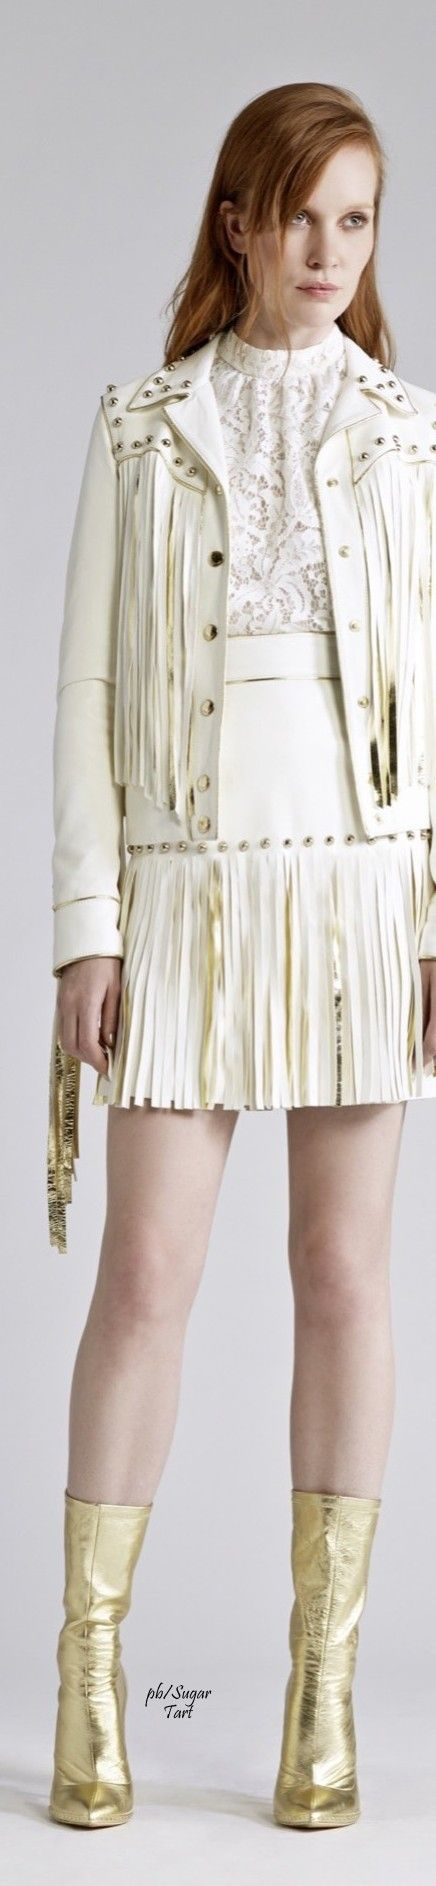 Just Cavalli Resort 2016 | House of Beccaria~